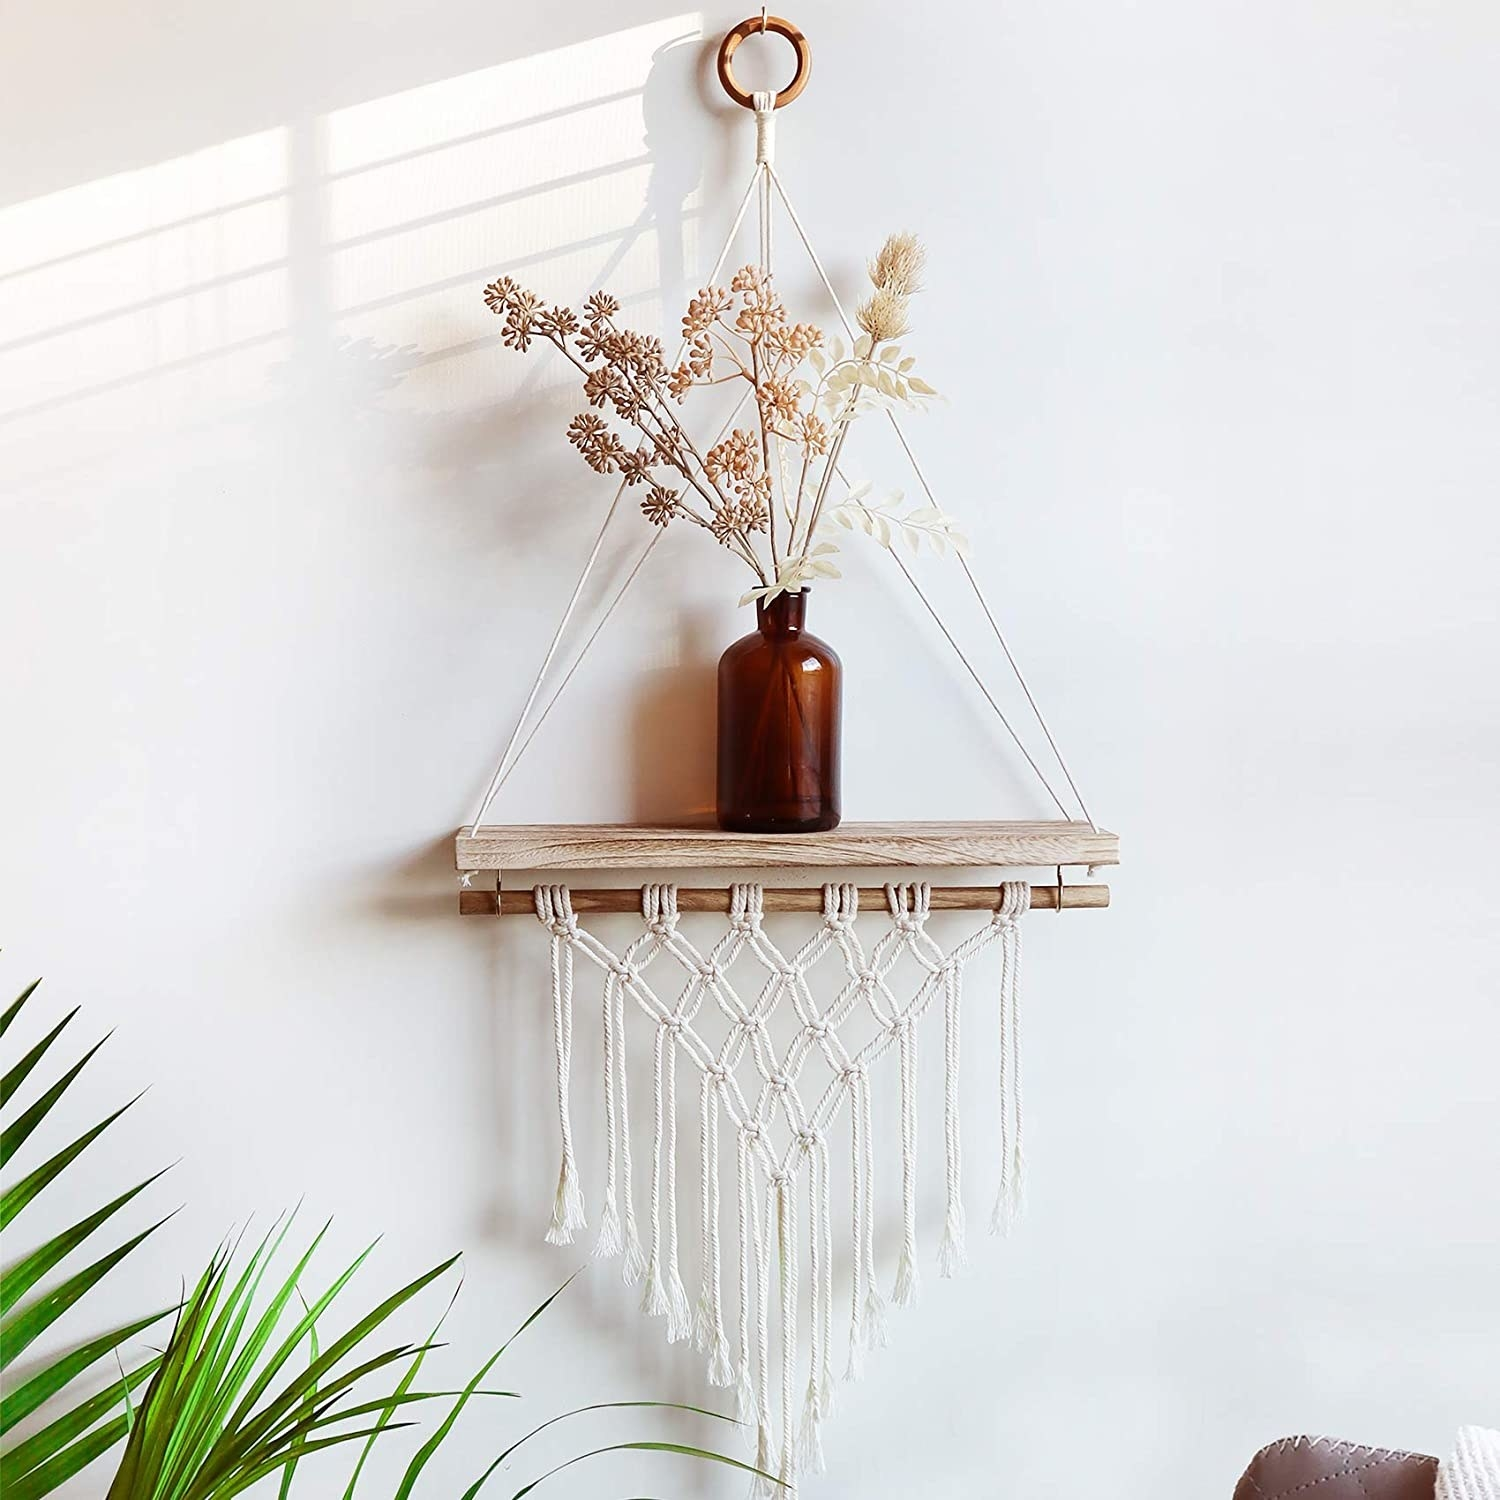 A hanging shelf decorated with macrame with a vase of flowers sitting on it